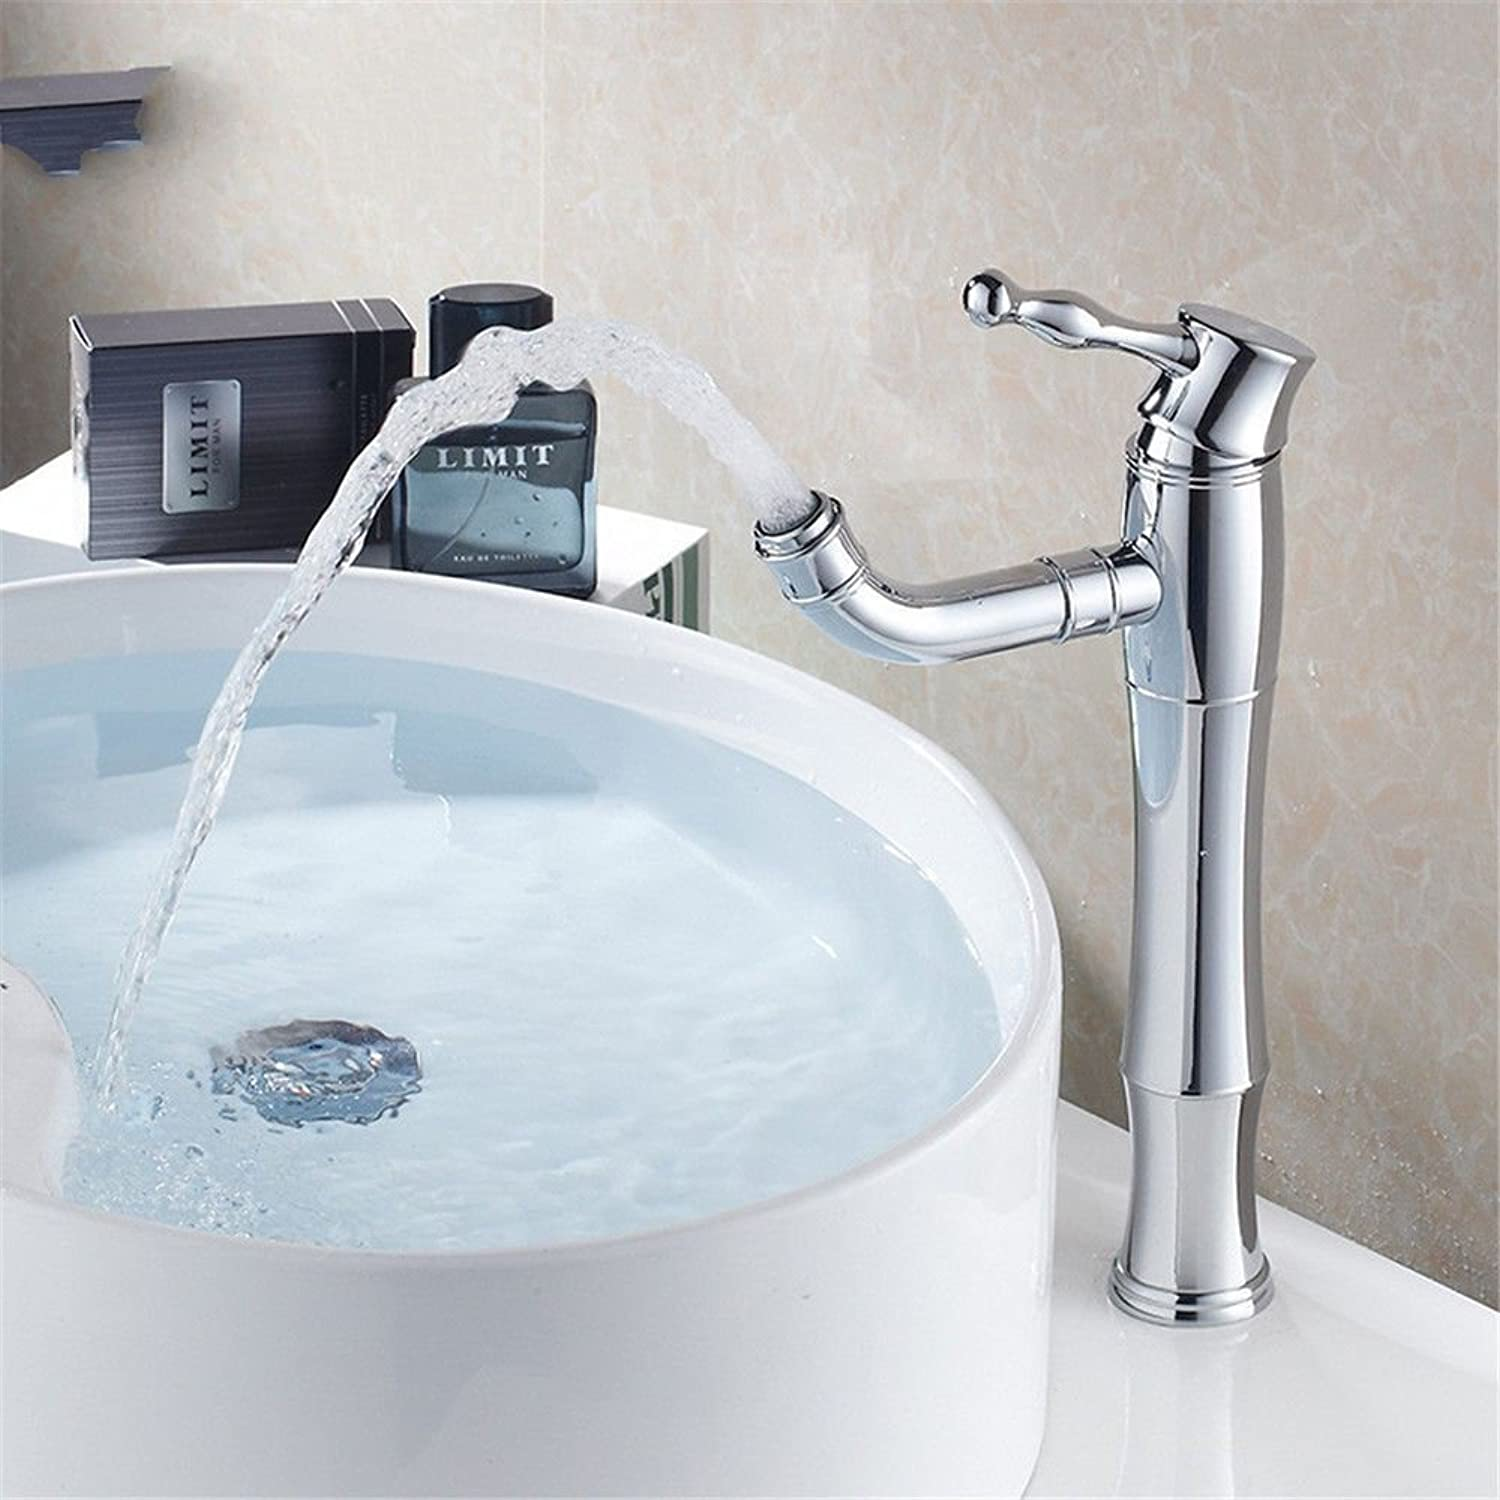 ETERNAL QUALITY Bathroom Sink Basin Tap Brass Mixer Tap Washroom Mixer Faucet Basin high single hole faucet mixing of hot and cold water basin-wide water faucet brass tap